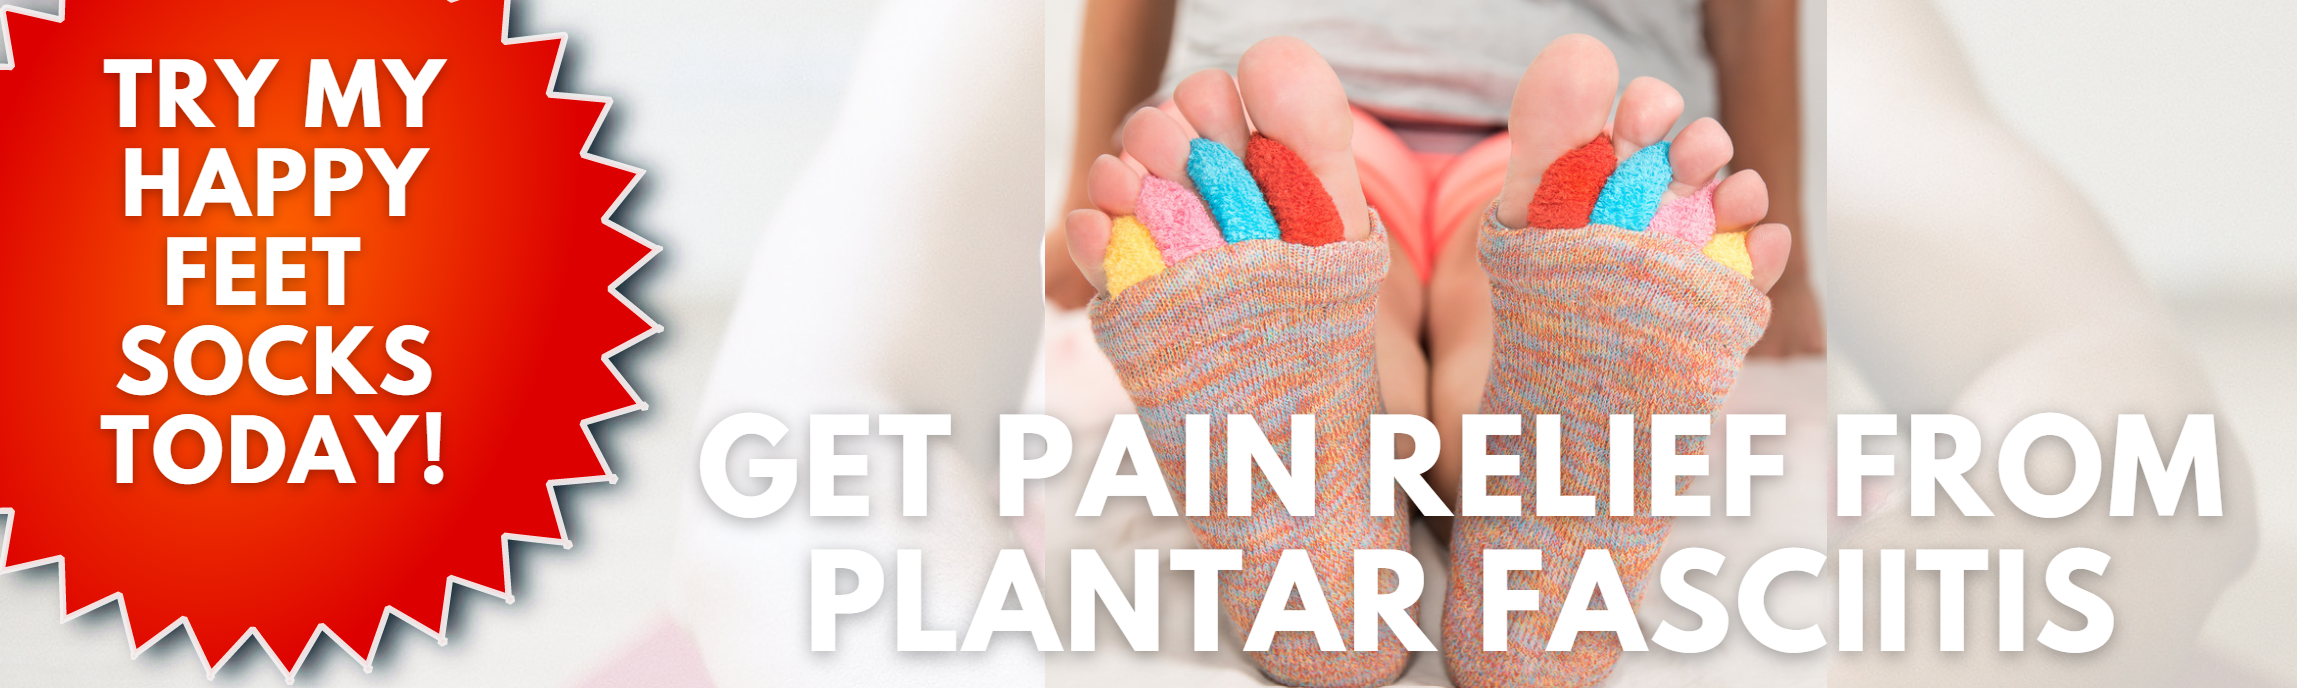 Pain Relief from Plantar Fasciitis with My Happy Feet Socks